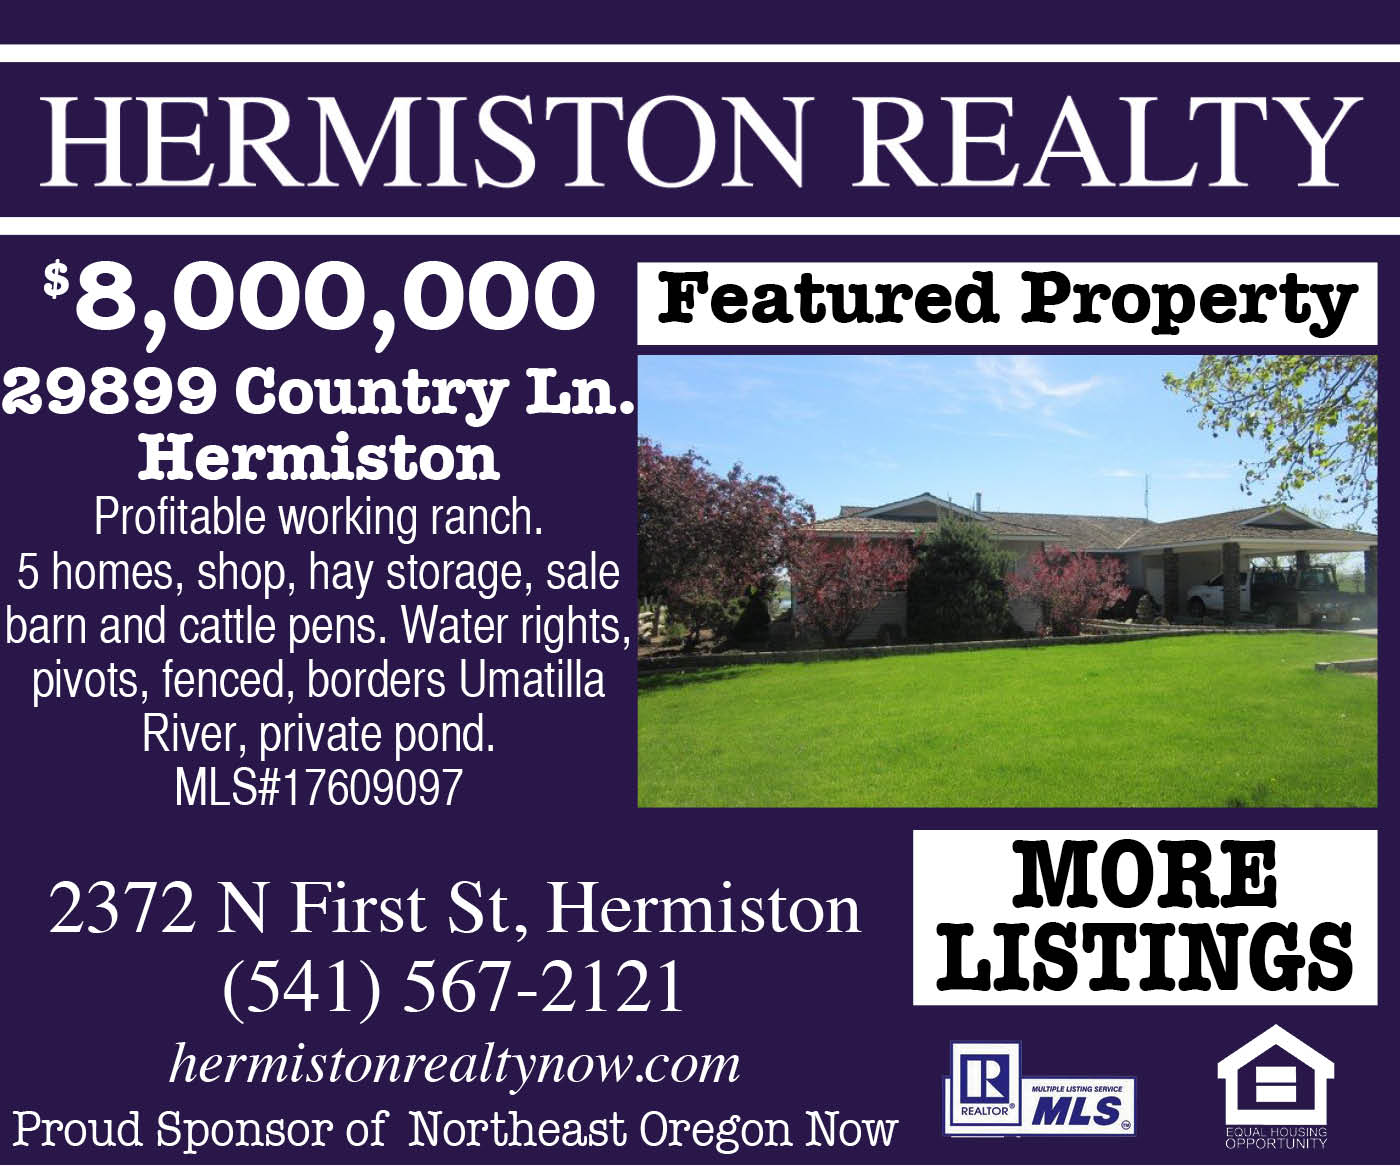 Hermiston Realty Side Ad No. 3 5-22-17 (127)